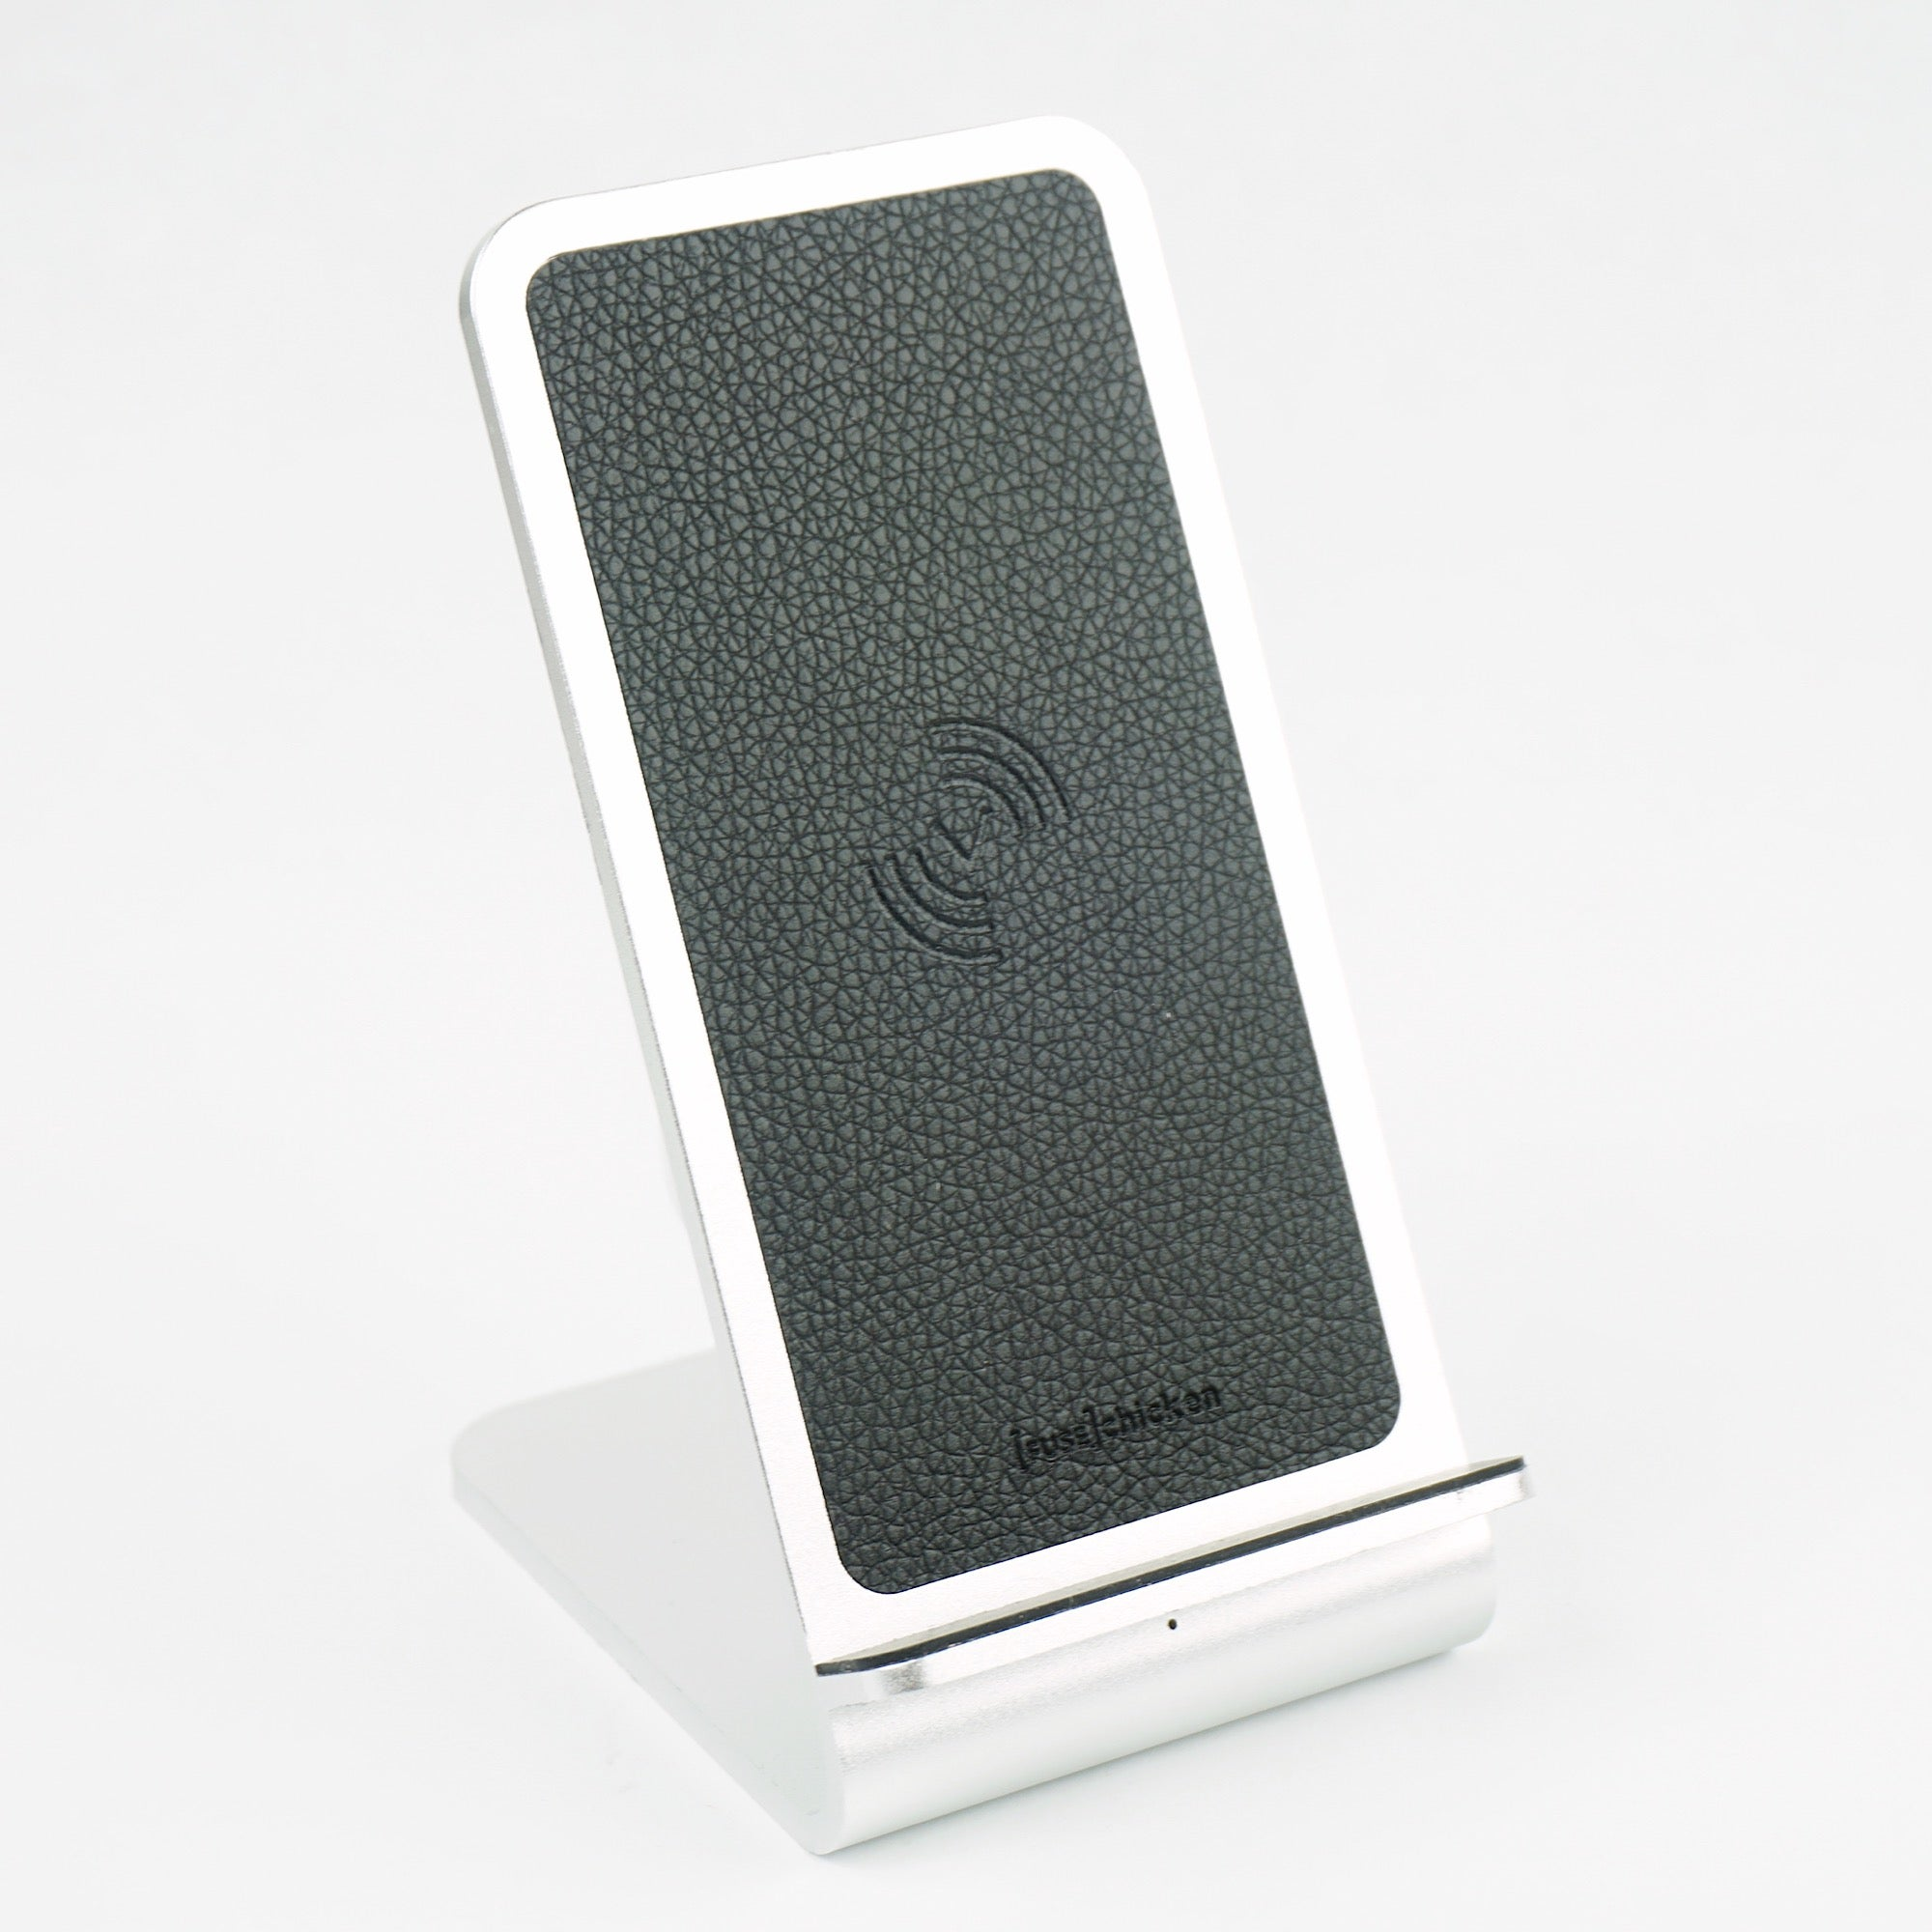 GRAVITY LIFT : Premium Wireless Charging Stand